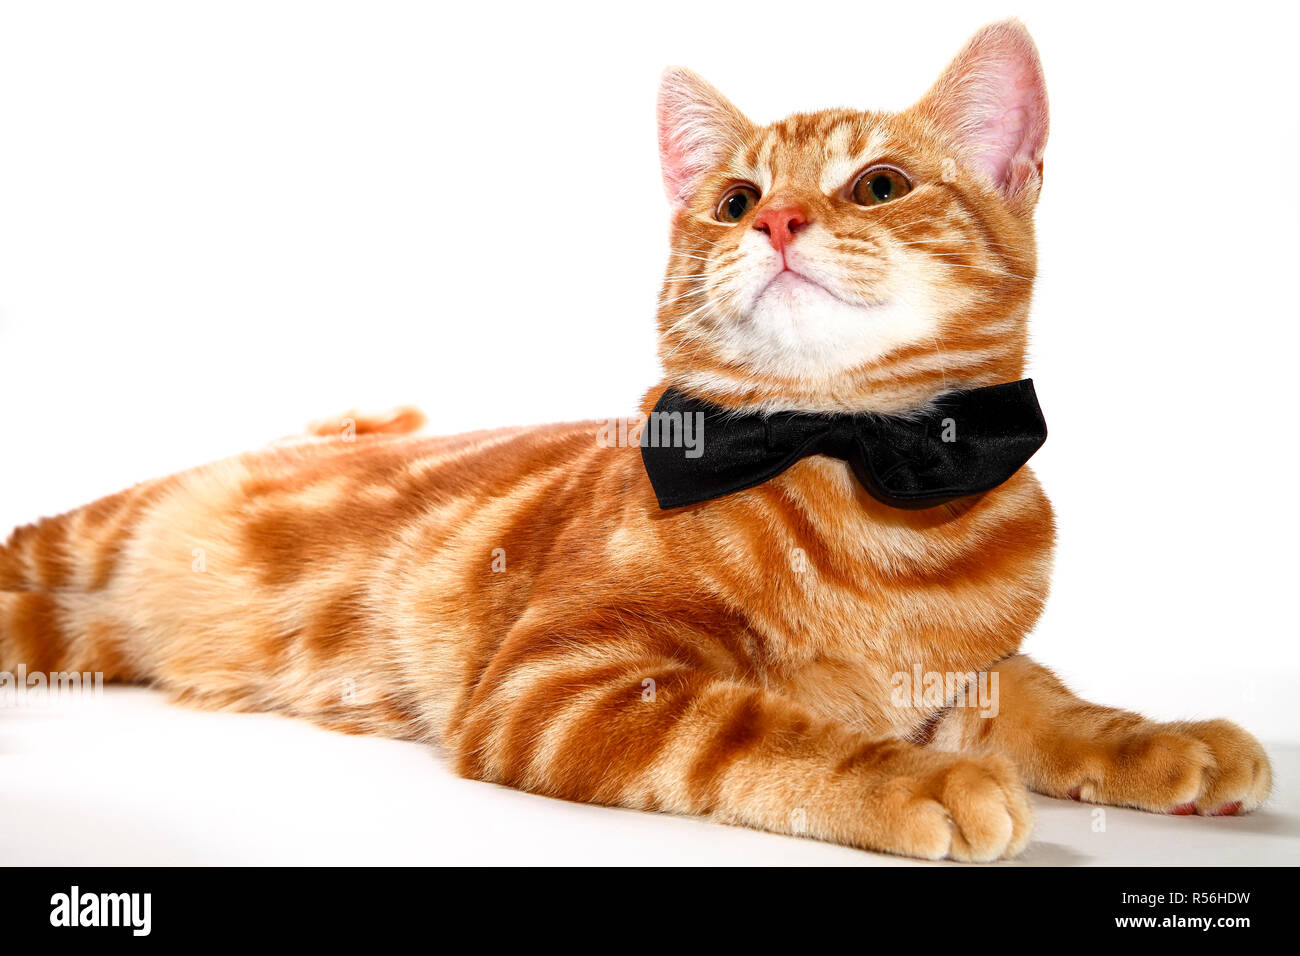 Mackerel ginger tabby kitten wearing a bow tie isolated on a white background,party animal concept - Stock Image